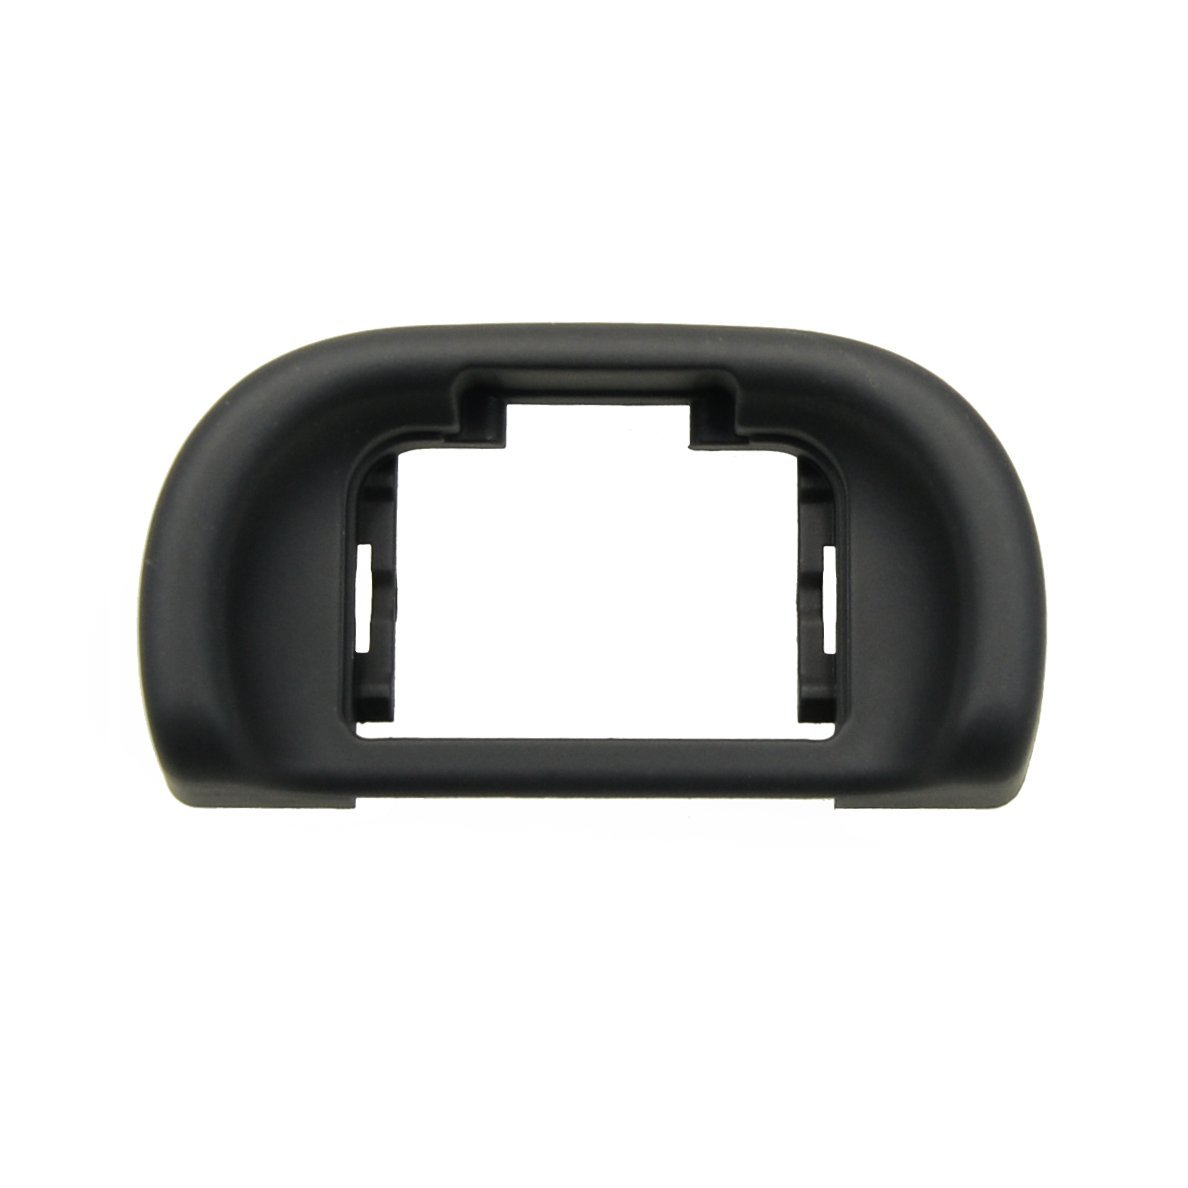 Foto&Tech Eyecup with Rubber Coated Plastic for Sony Alpha A7R II, A7 II, A7, A7R, A7S Viewfinder Viewfinder Replaces SONY FDA-EP11 EYECUP EP11